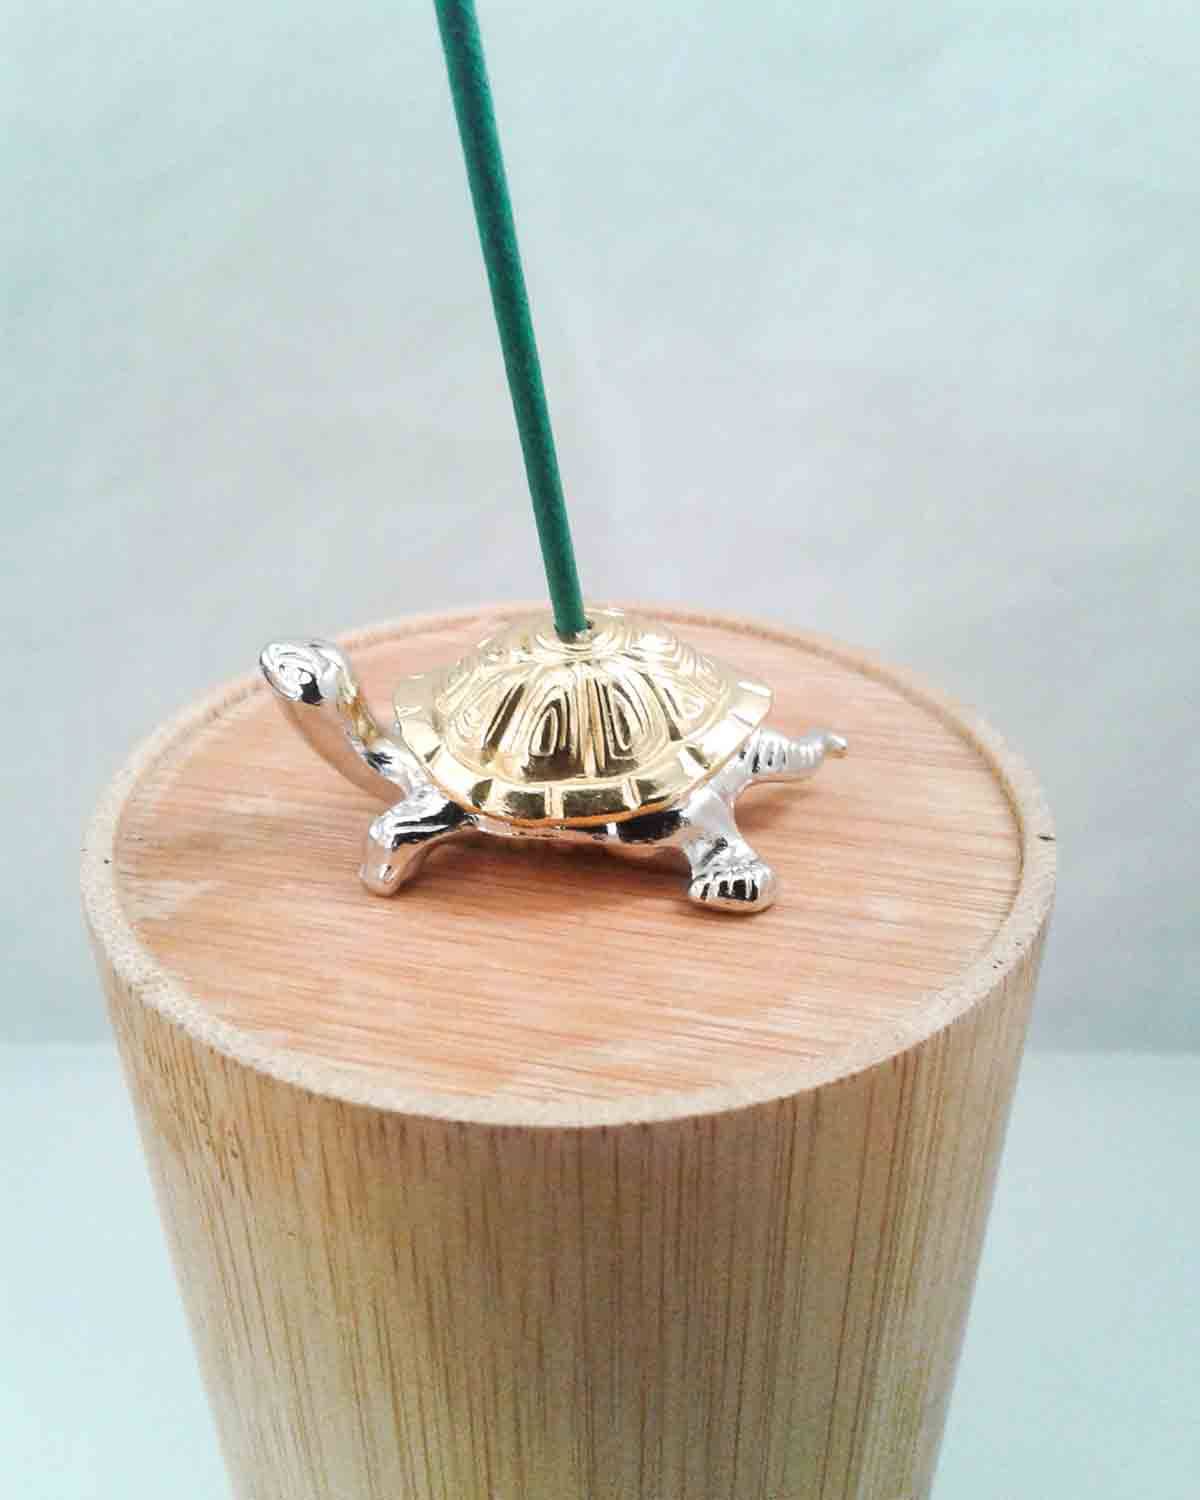 Tiny TwoTone Turtle Incense Holder